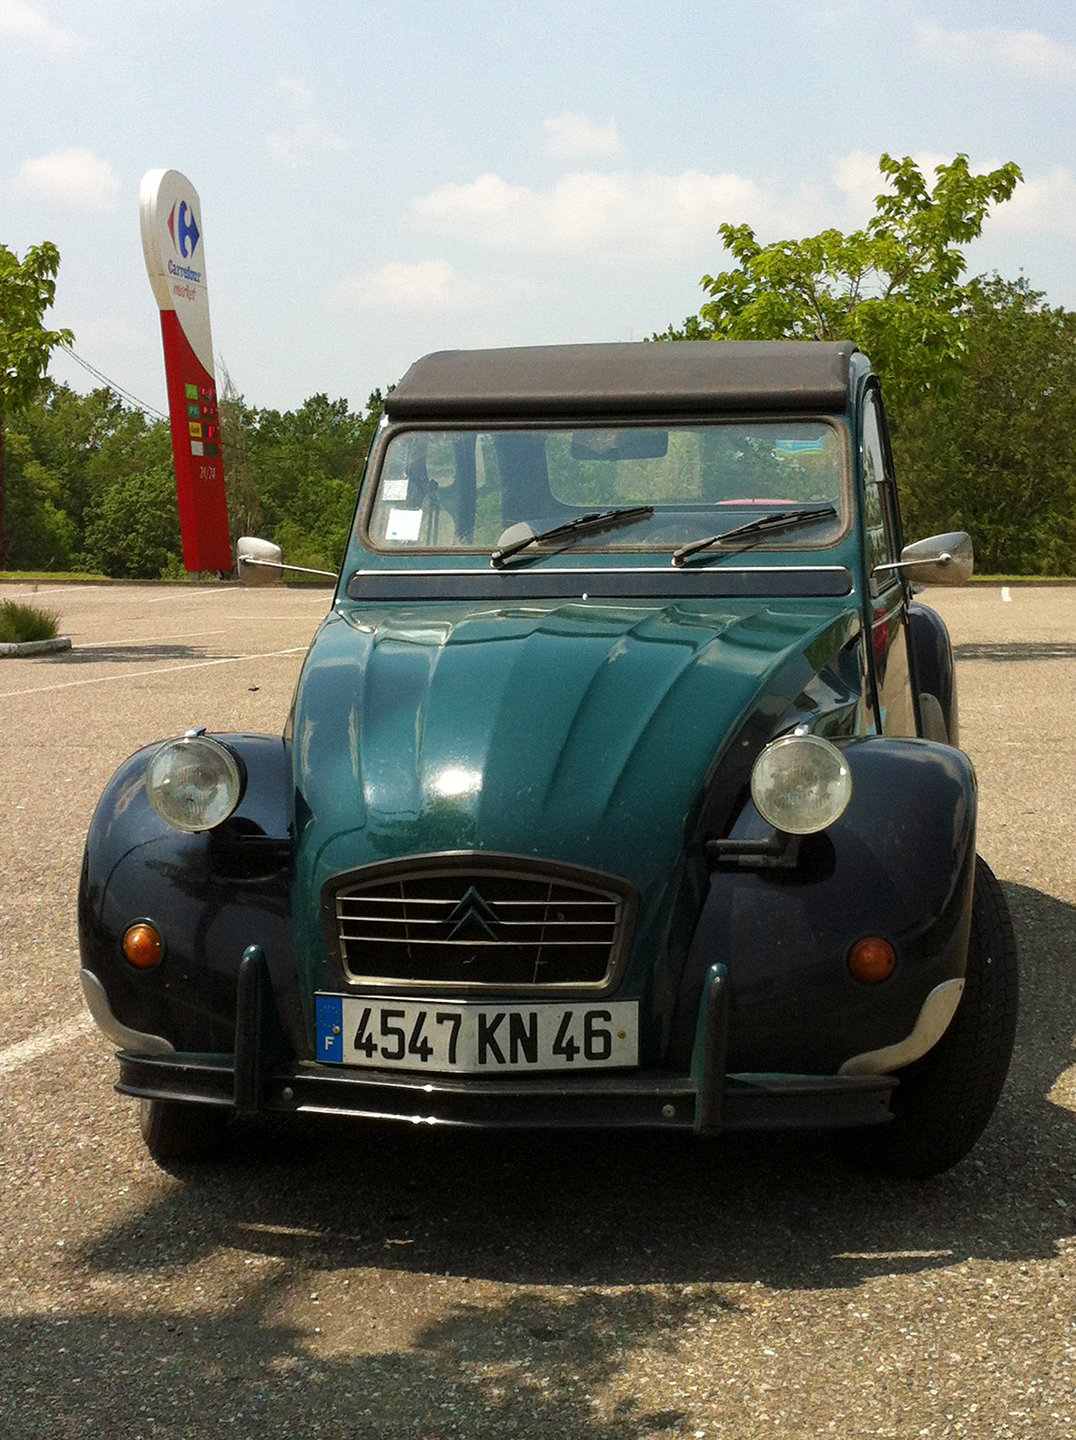 """Over the years, I've noticed a one-of-a-kind 2 CV often parked at Carrefour or Intermarché. The car is mostly dark green but has gone through several paint """"upgrades:"""" on a photo I took in 2014, the front fender on the passenger side was cream instead of black."""